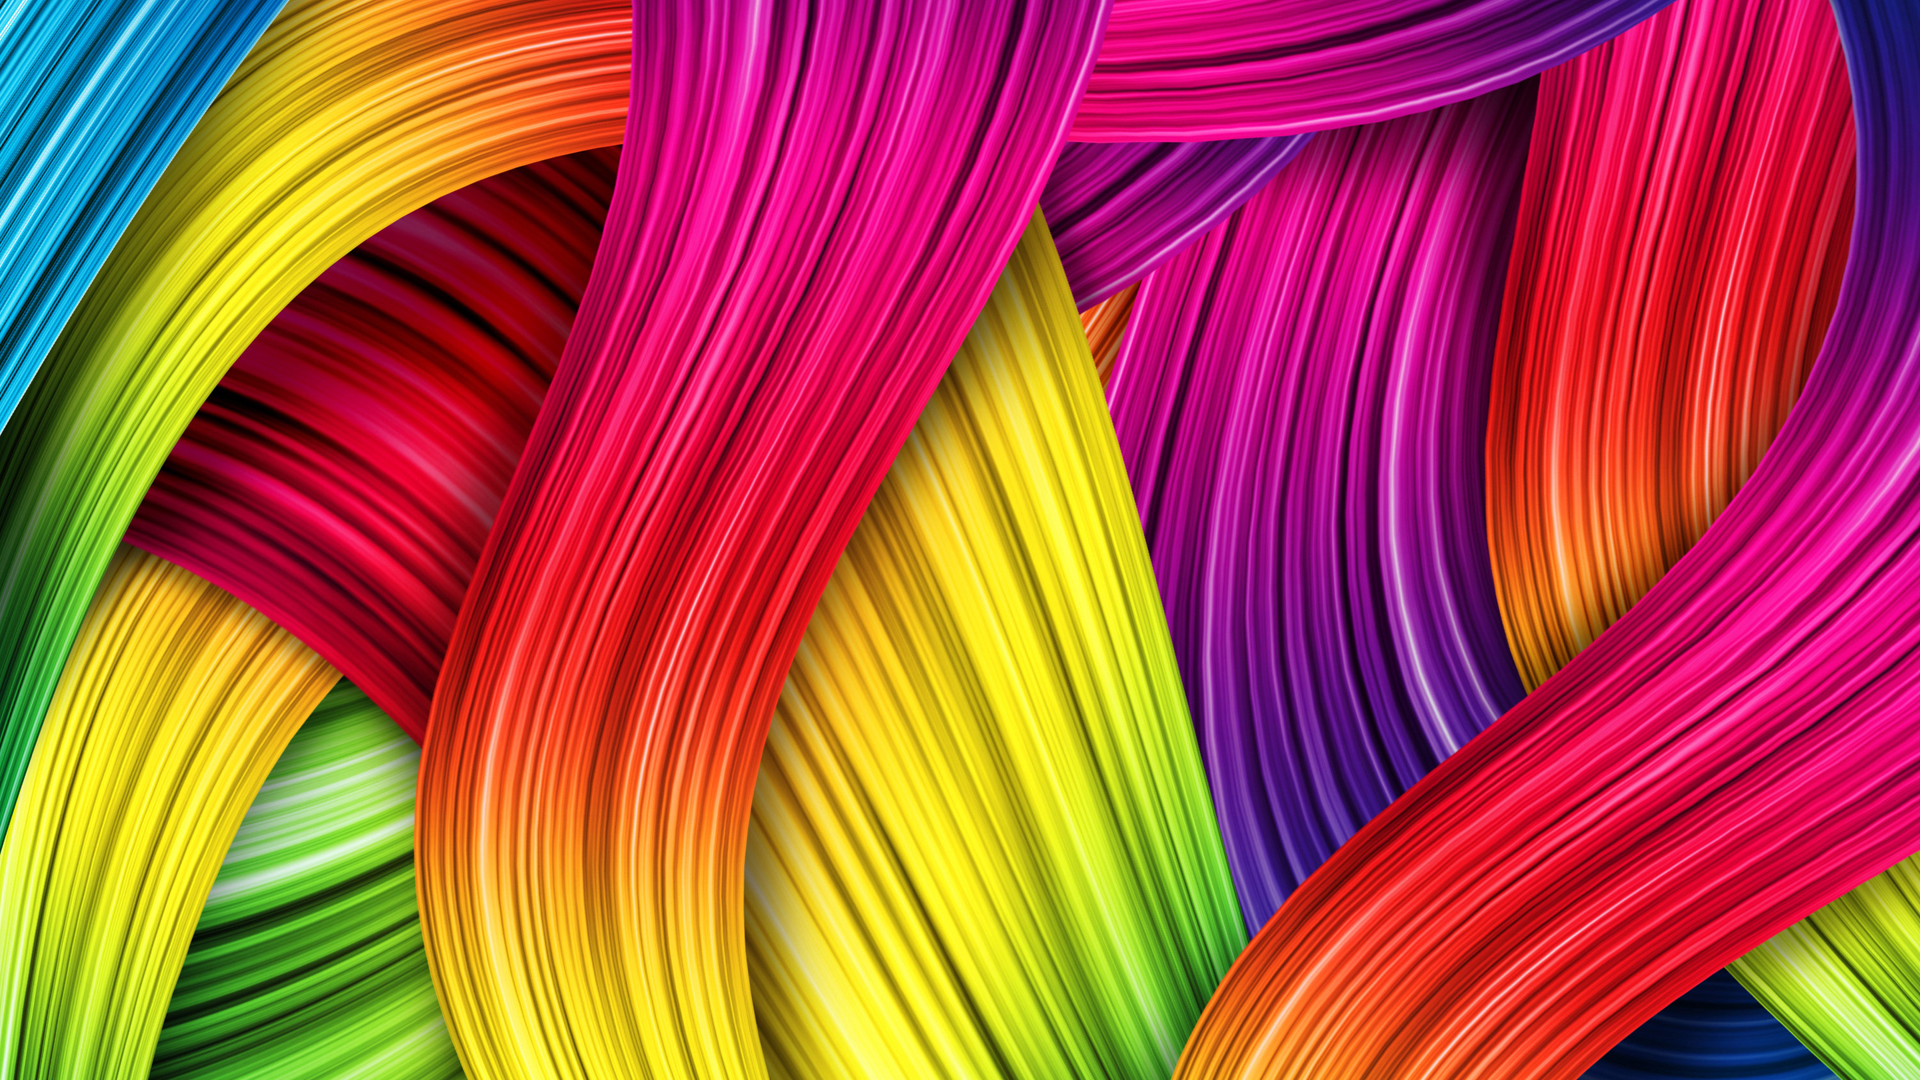 Colors Wallpaper Desktop   HD Wallpapers Backgrounds of Your Choice 1920x1080